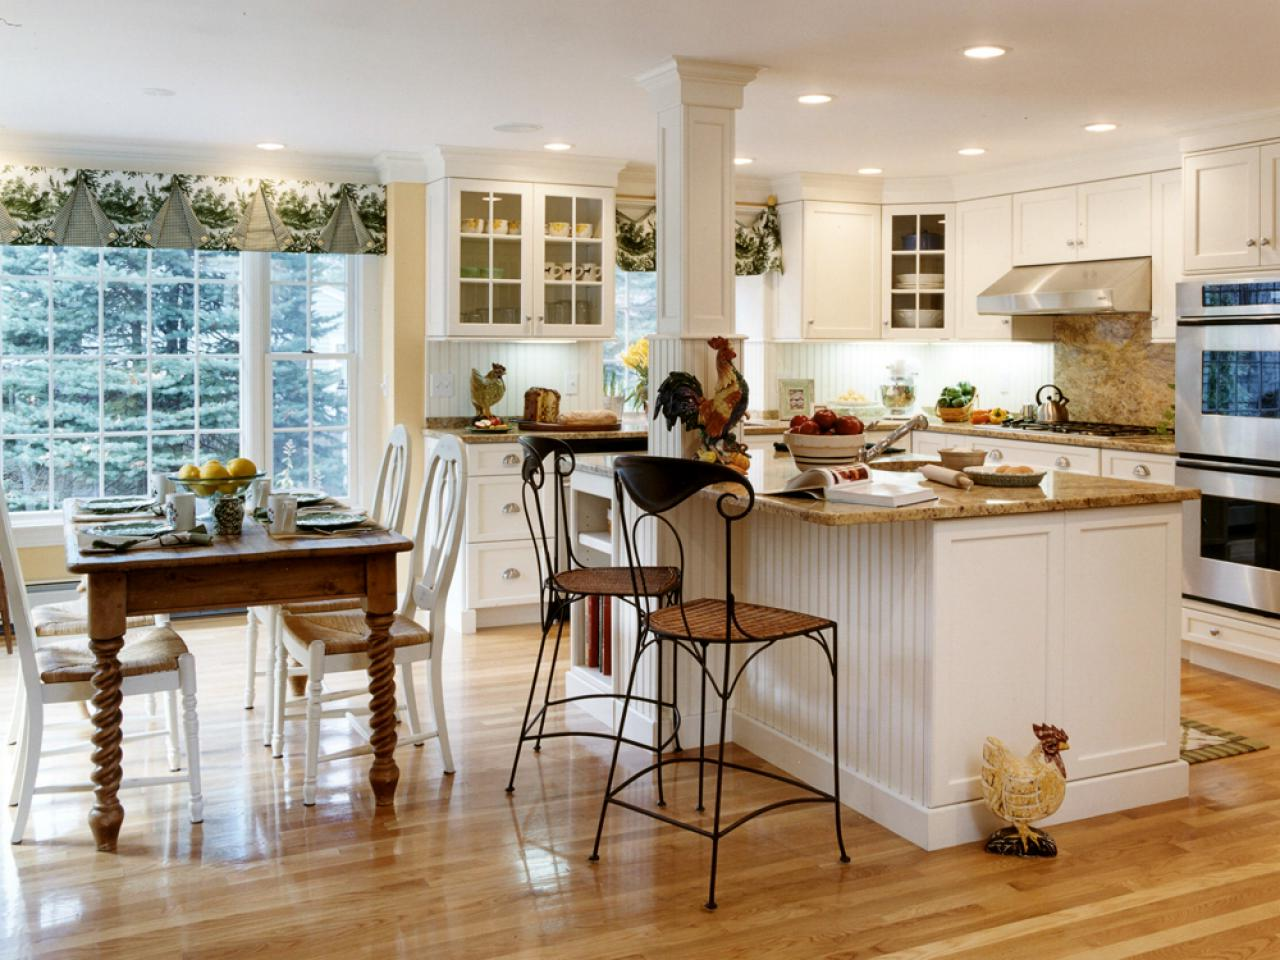 Wooden Floors In Kitchens Wooden Floor In The Kitchen Country Style All About Doors